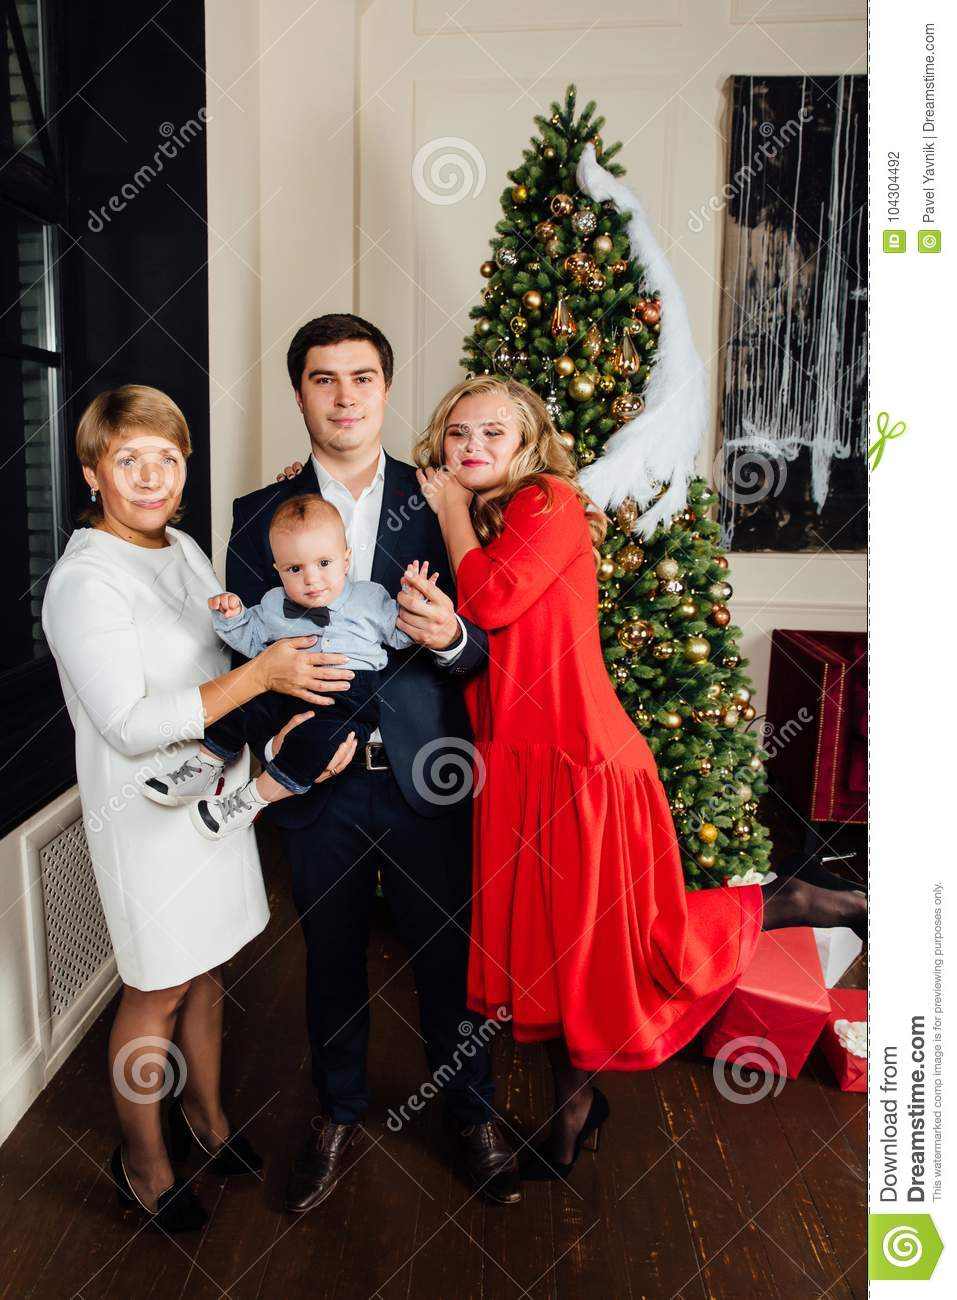 Multi Generation Family Group Portrait On A Christmas Tree